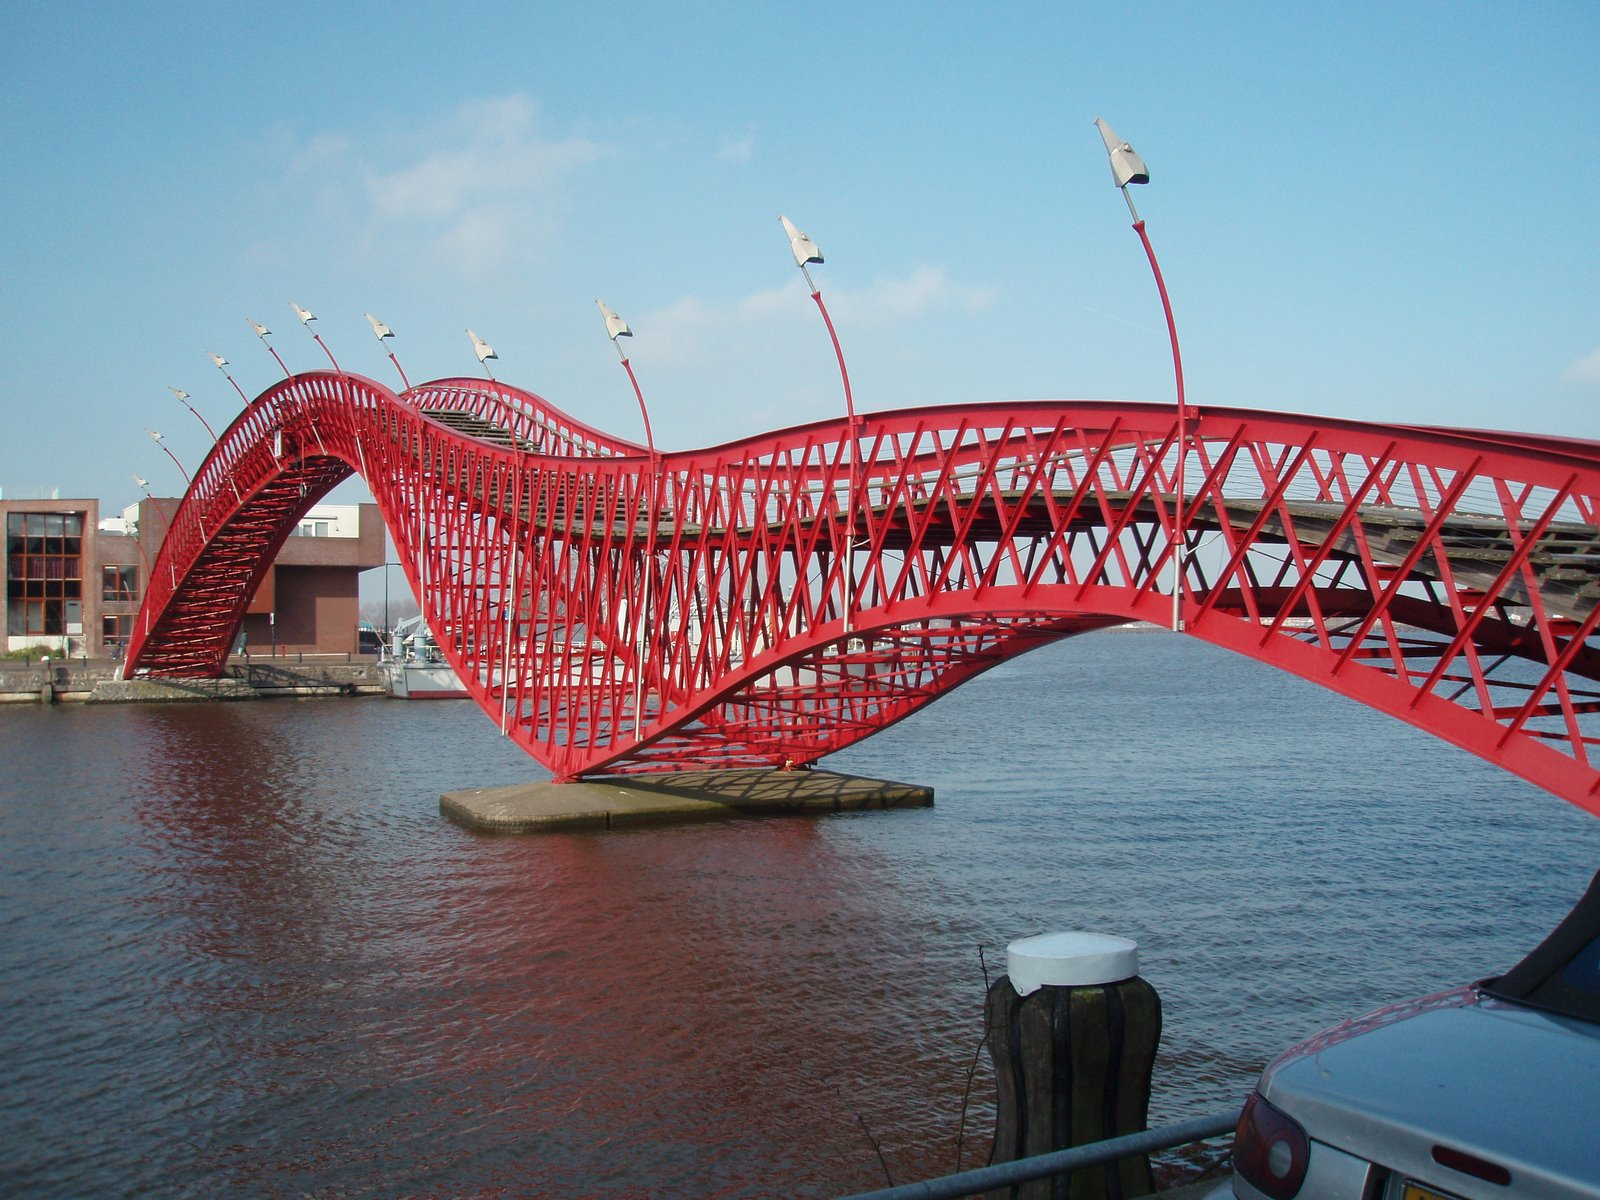 The Python Bridge